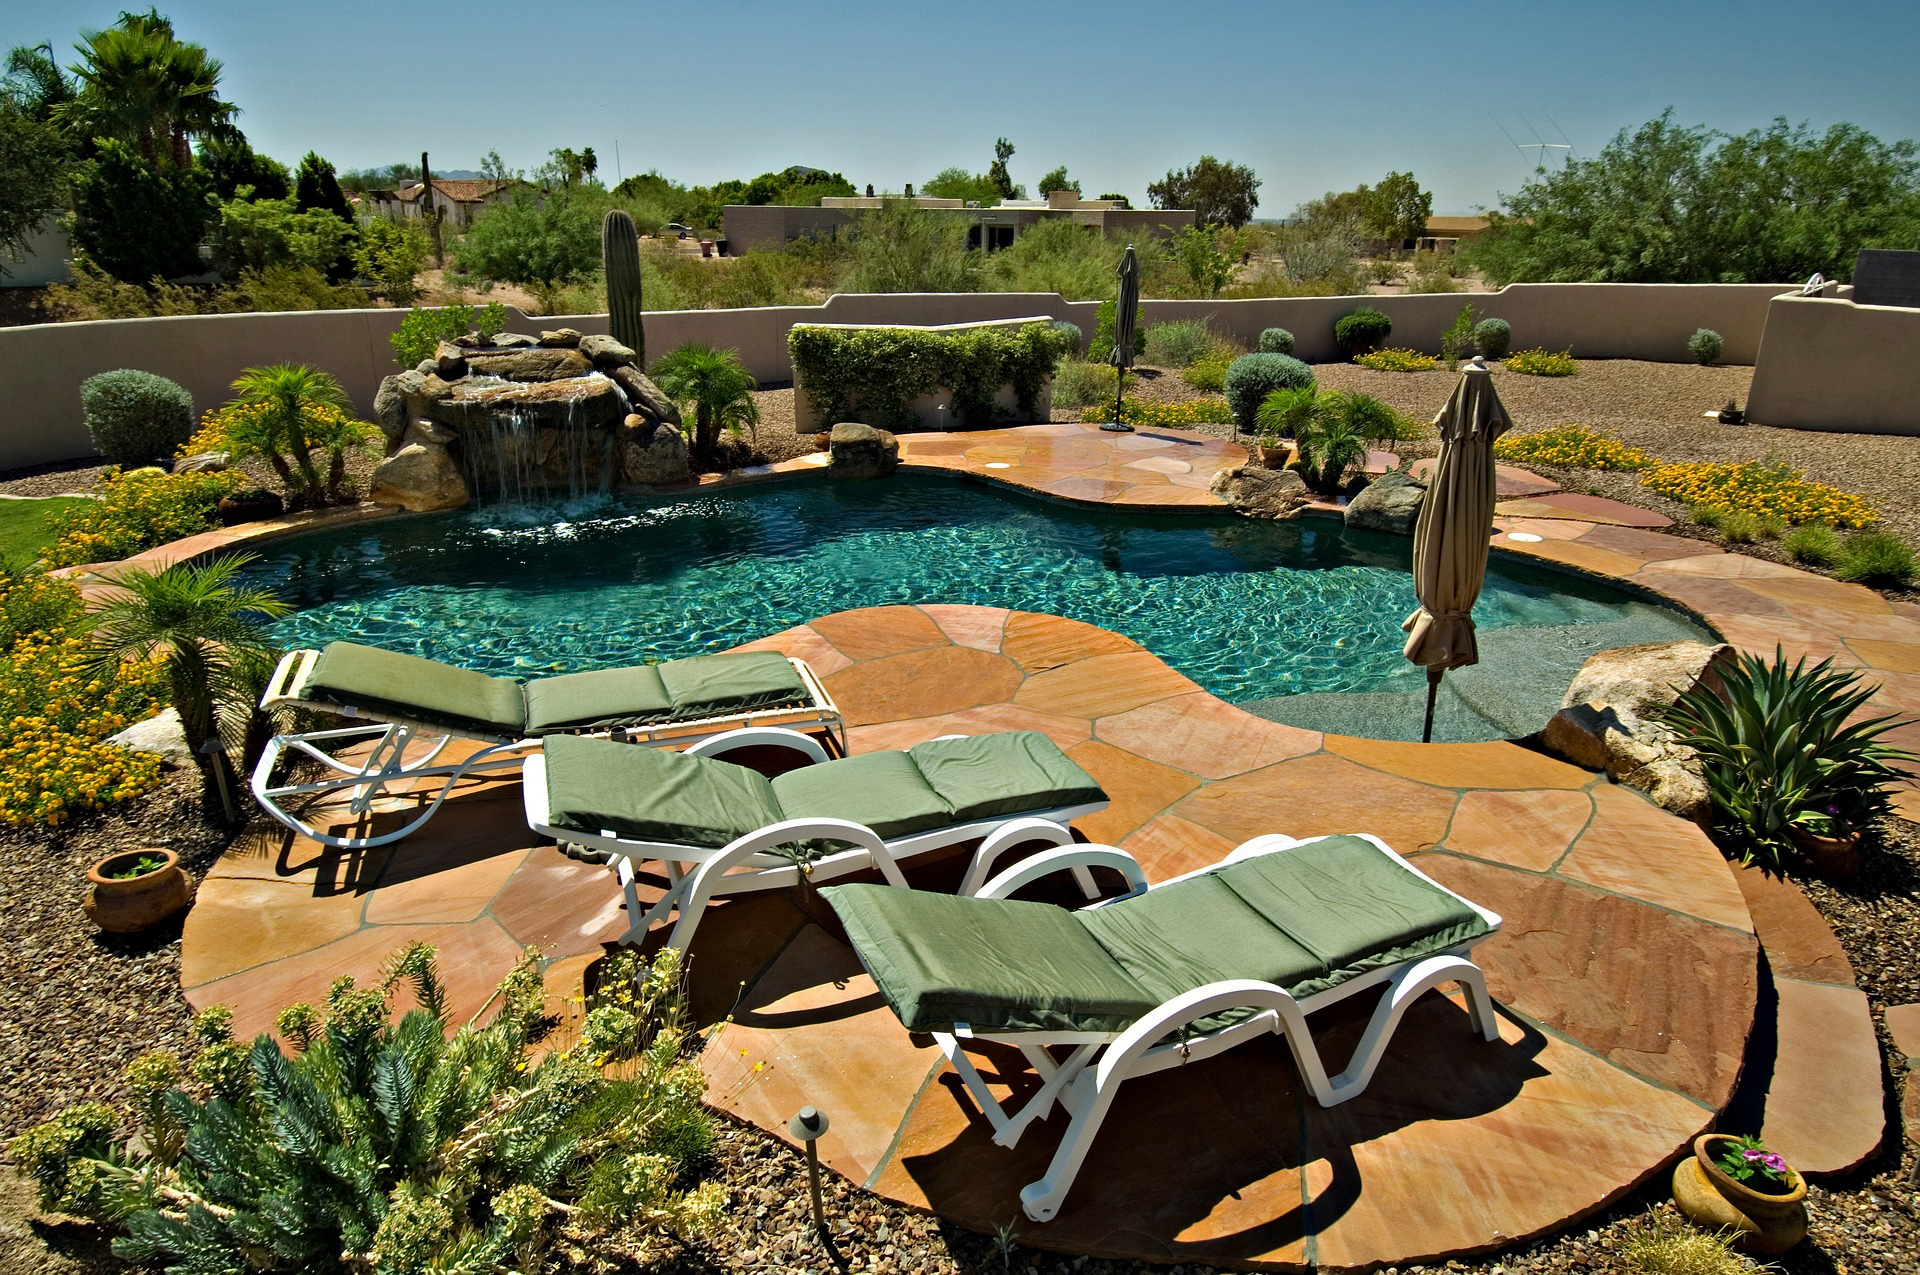 A photo of a backyard pool with desert plants.